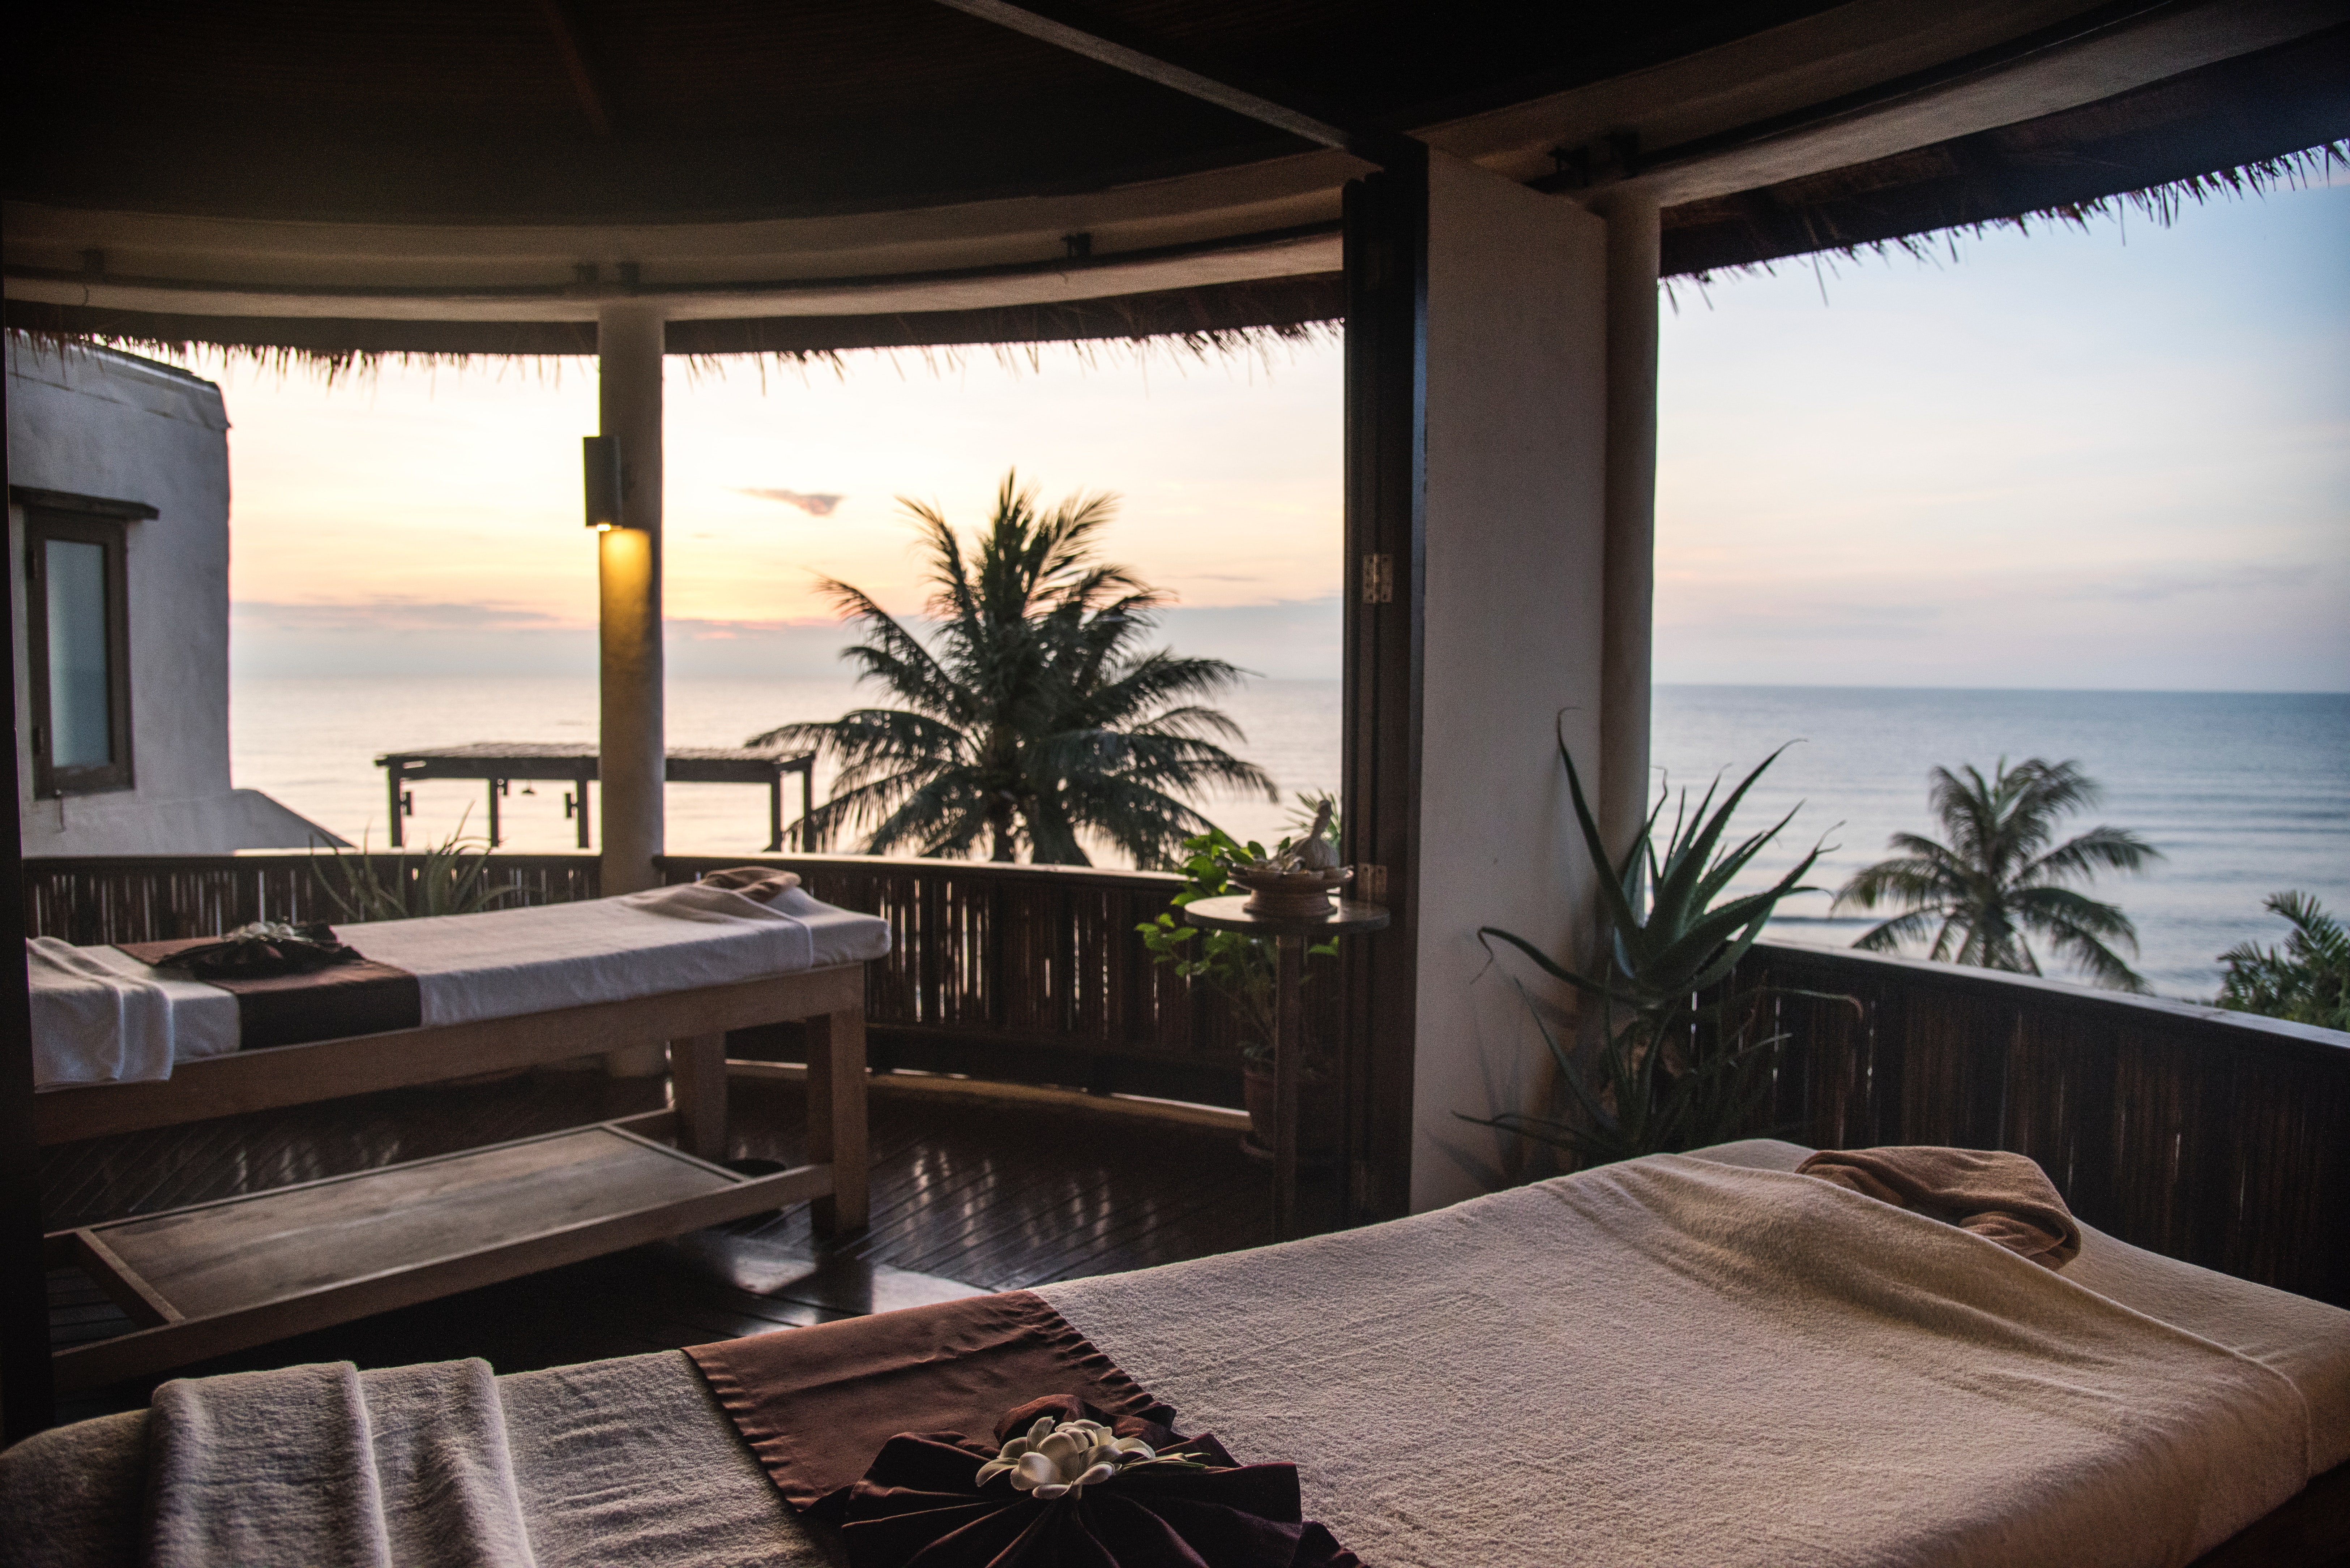 accommodation-beach-bed-1531672